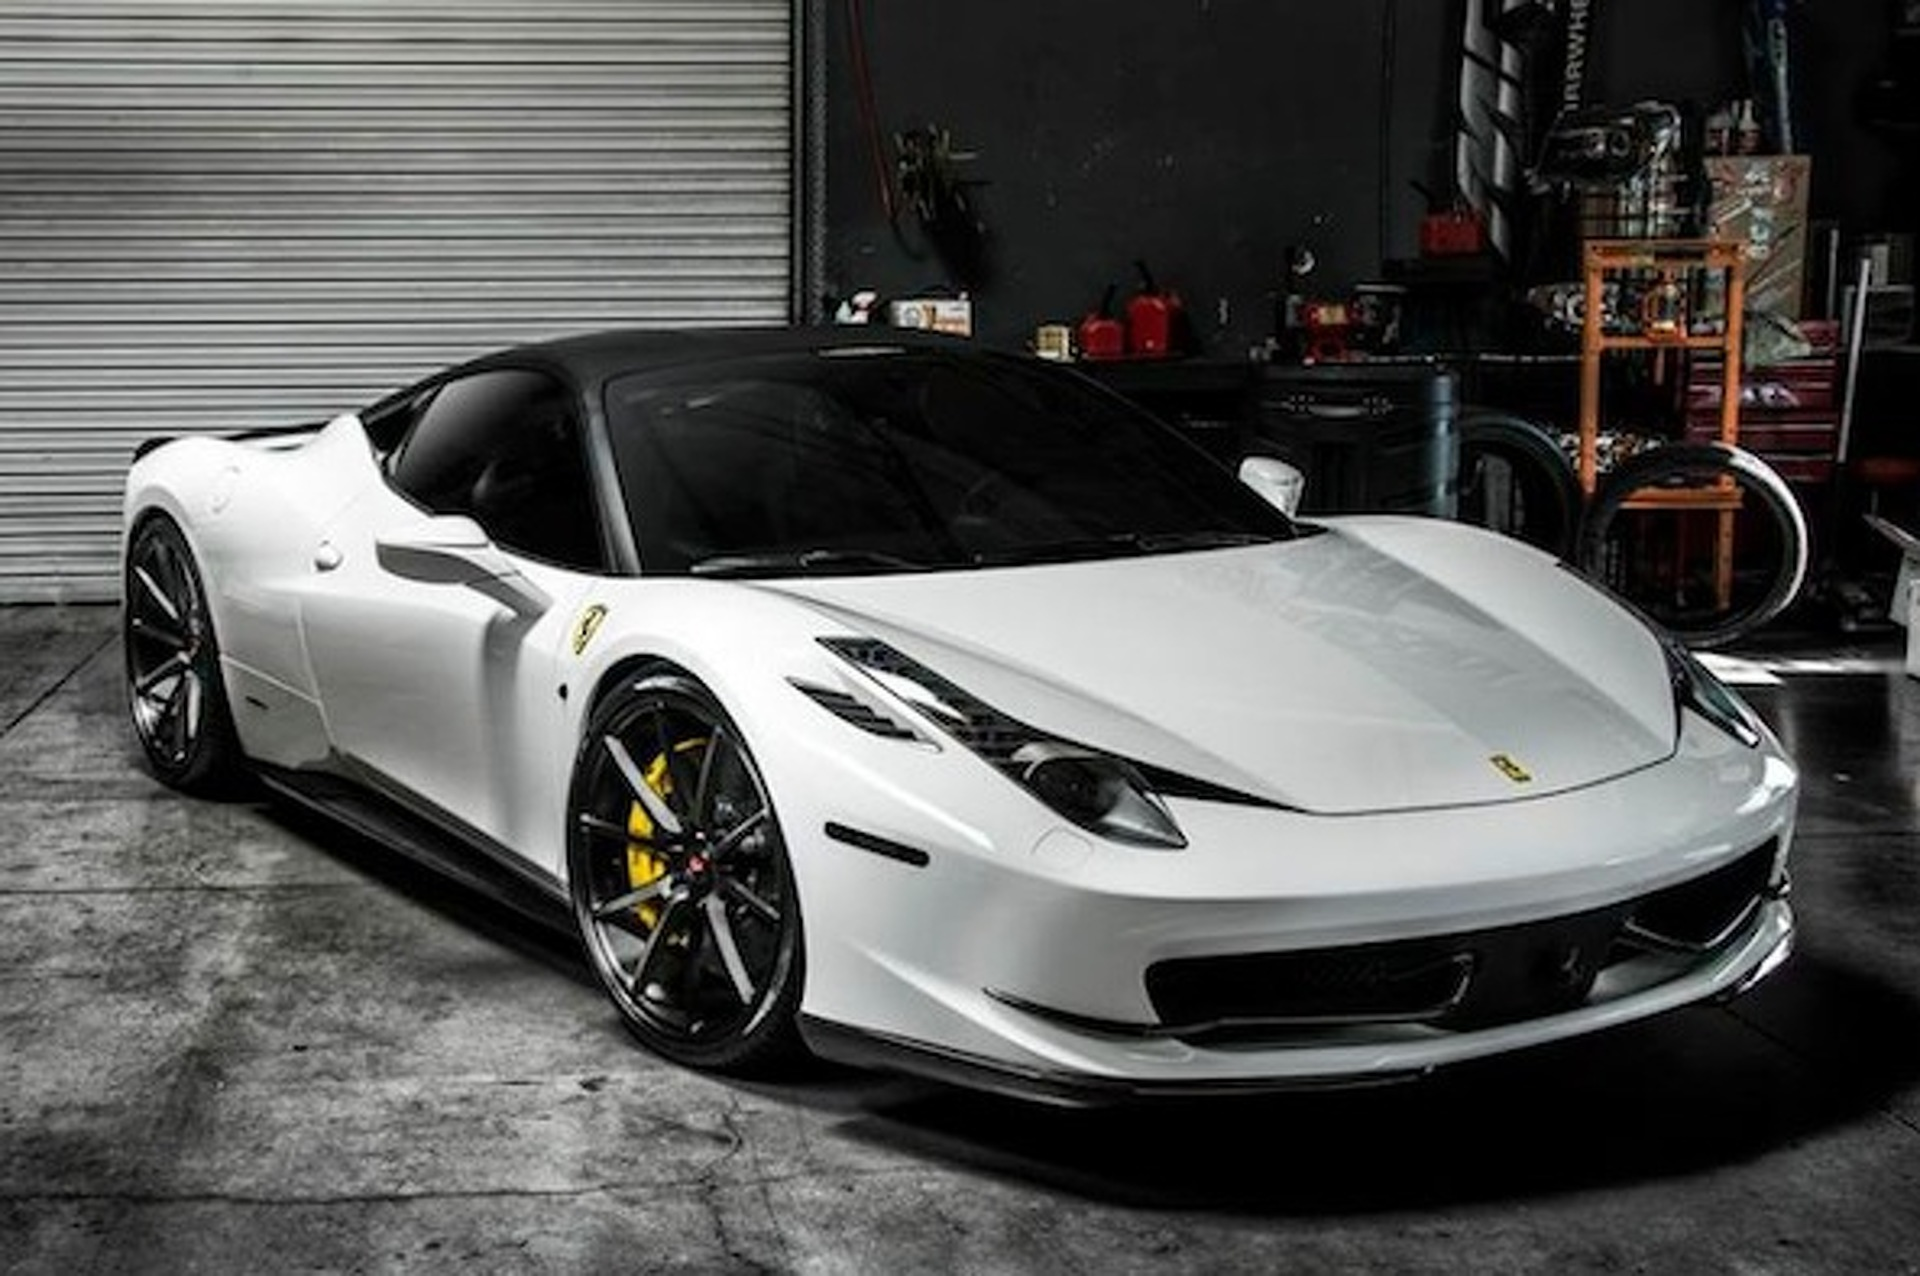 Classified of the Week: Vossen Ferrari 458 Italia